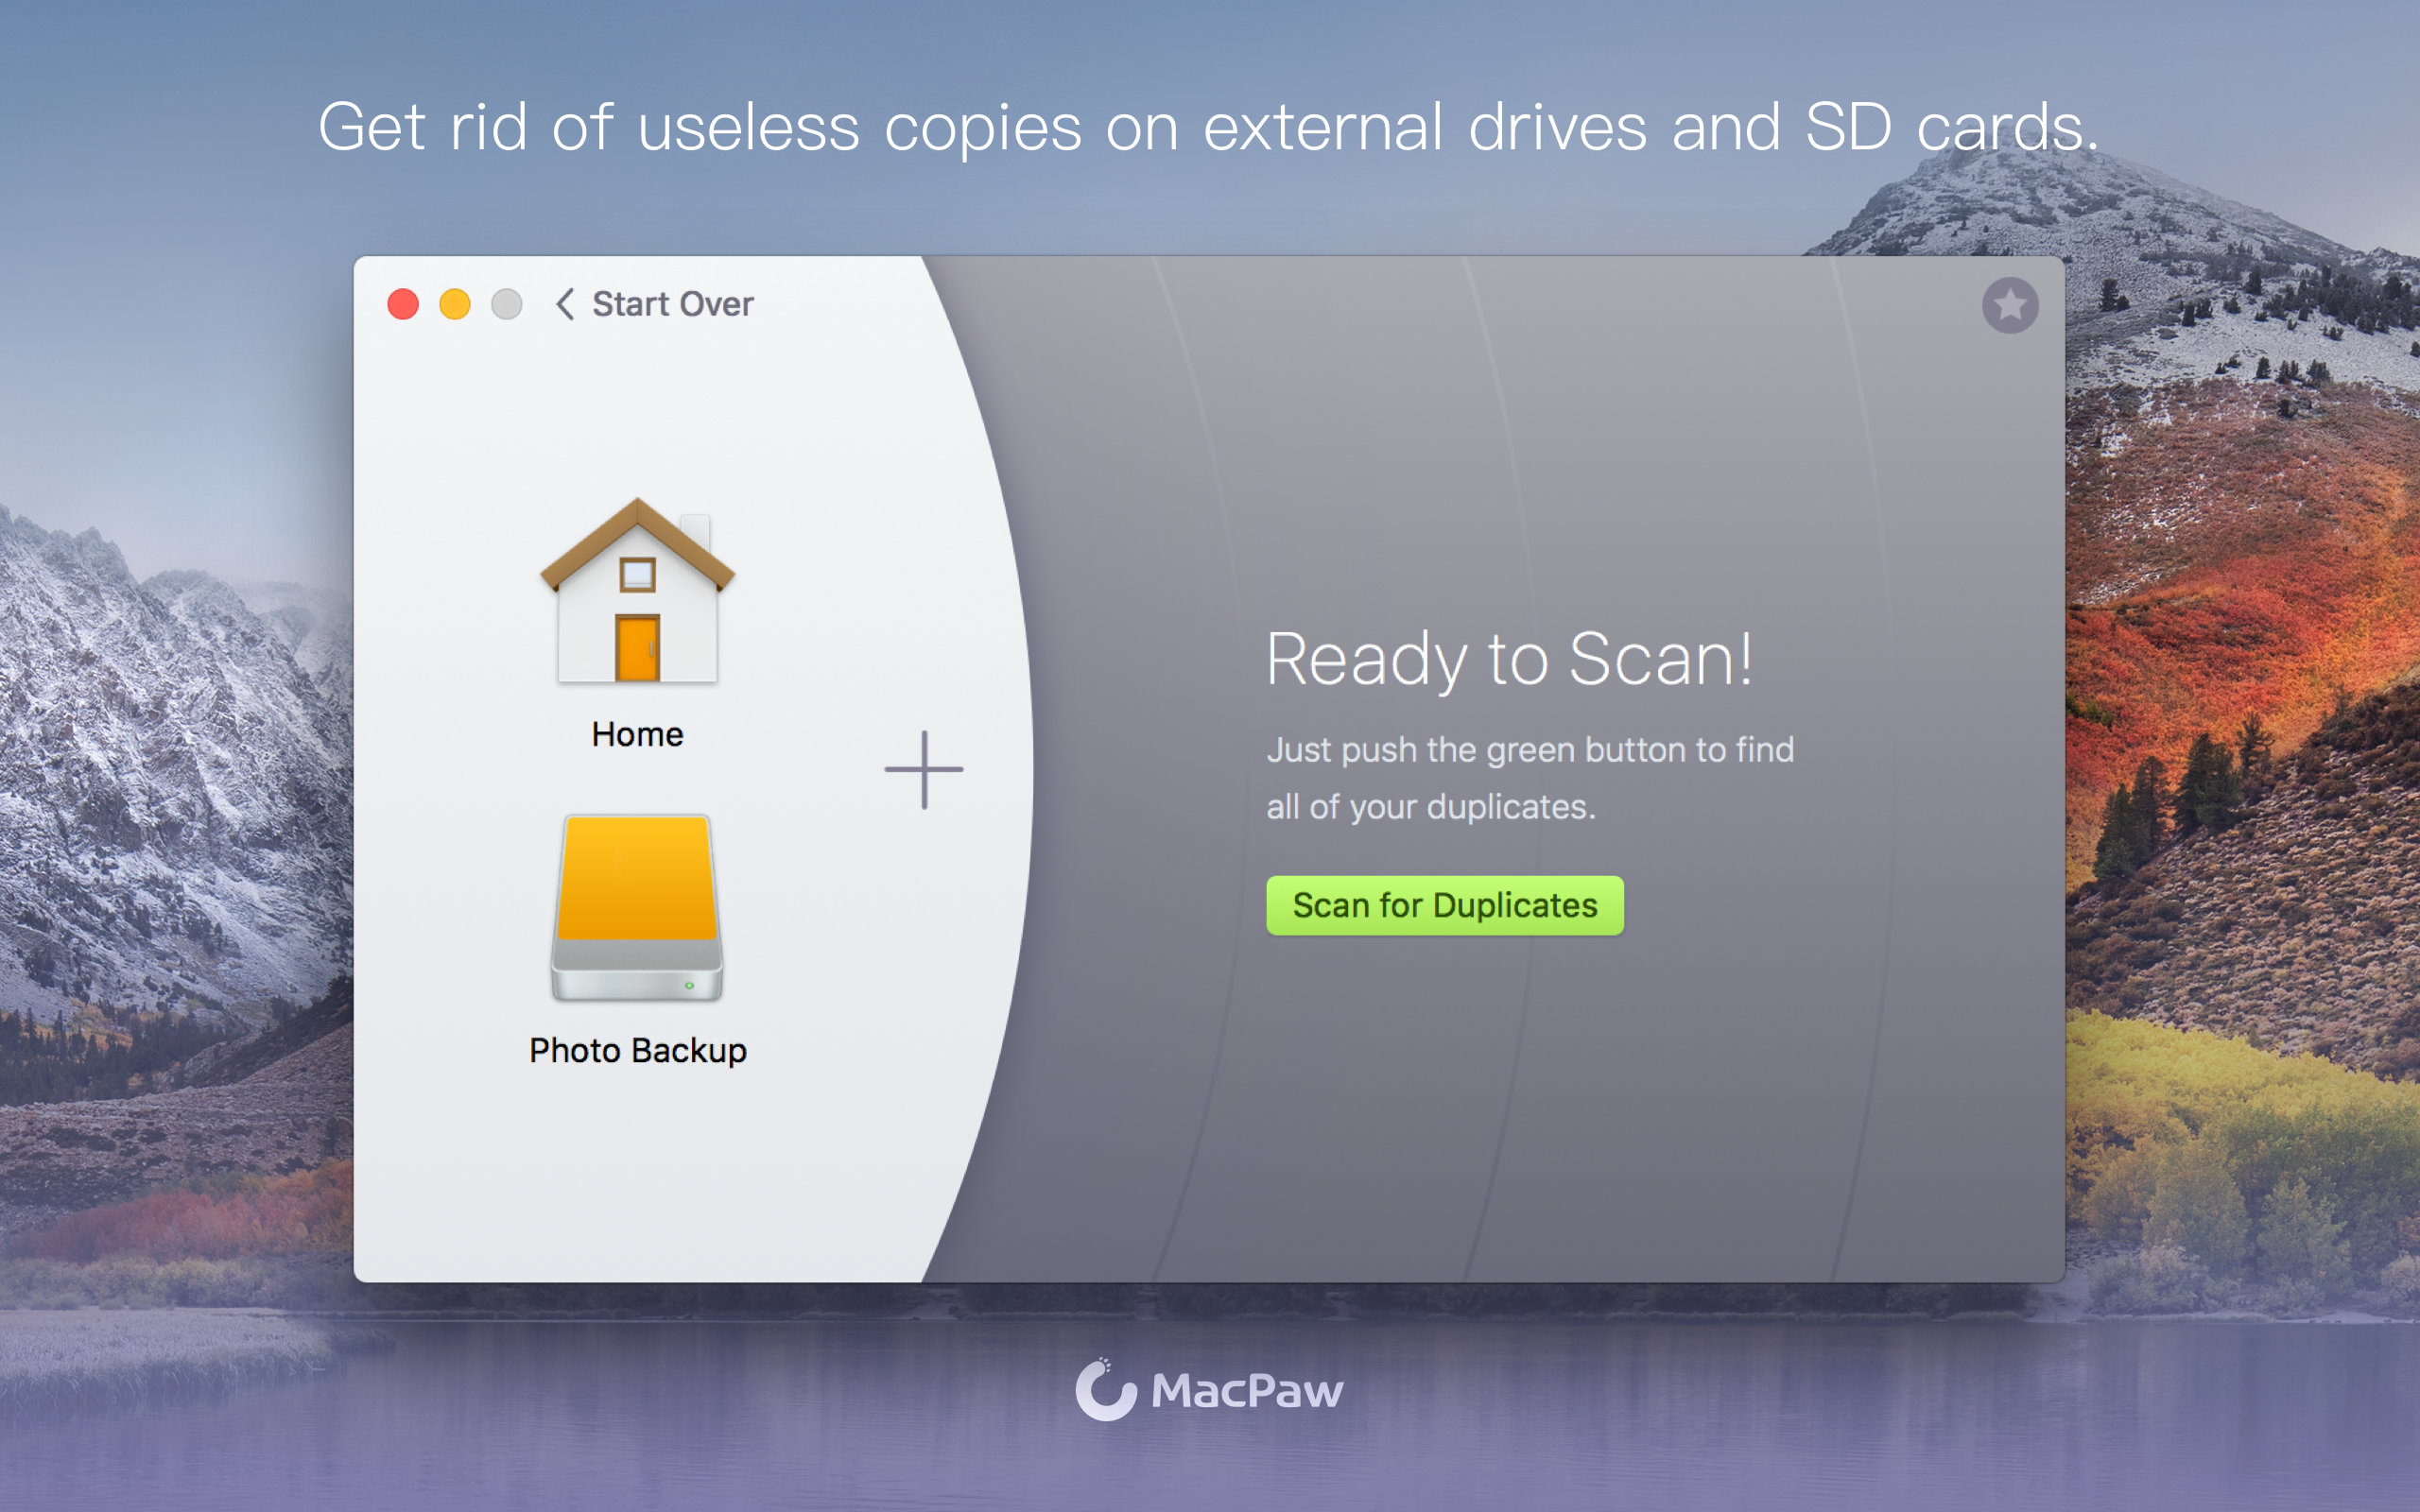 Get rid of useless copies on external drives and SD cards.